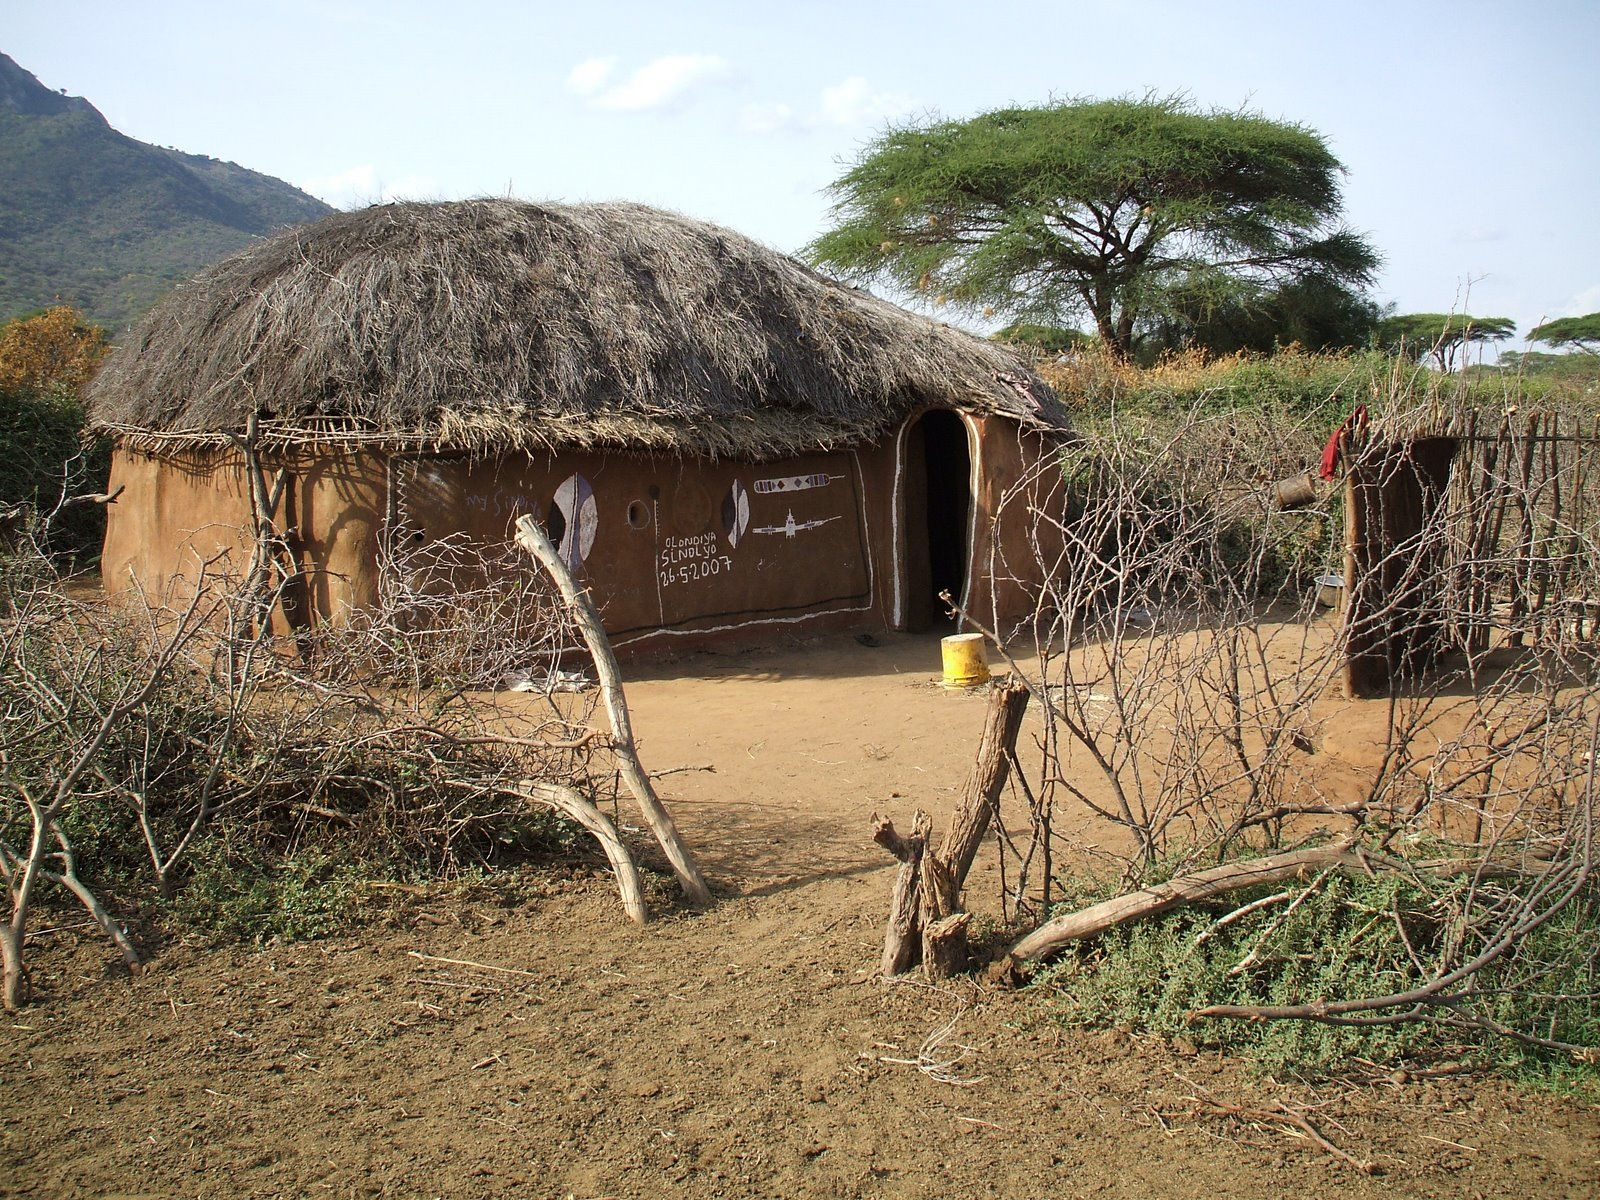 There Are So Many Different Styles Of These African Huts